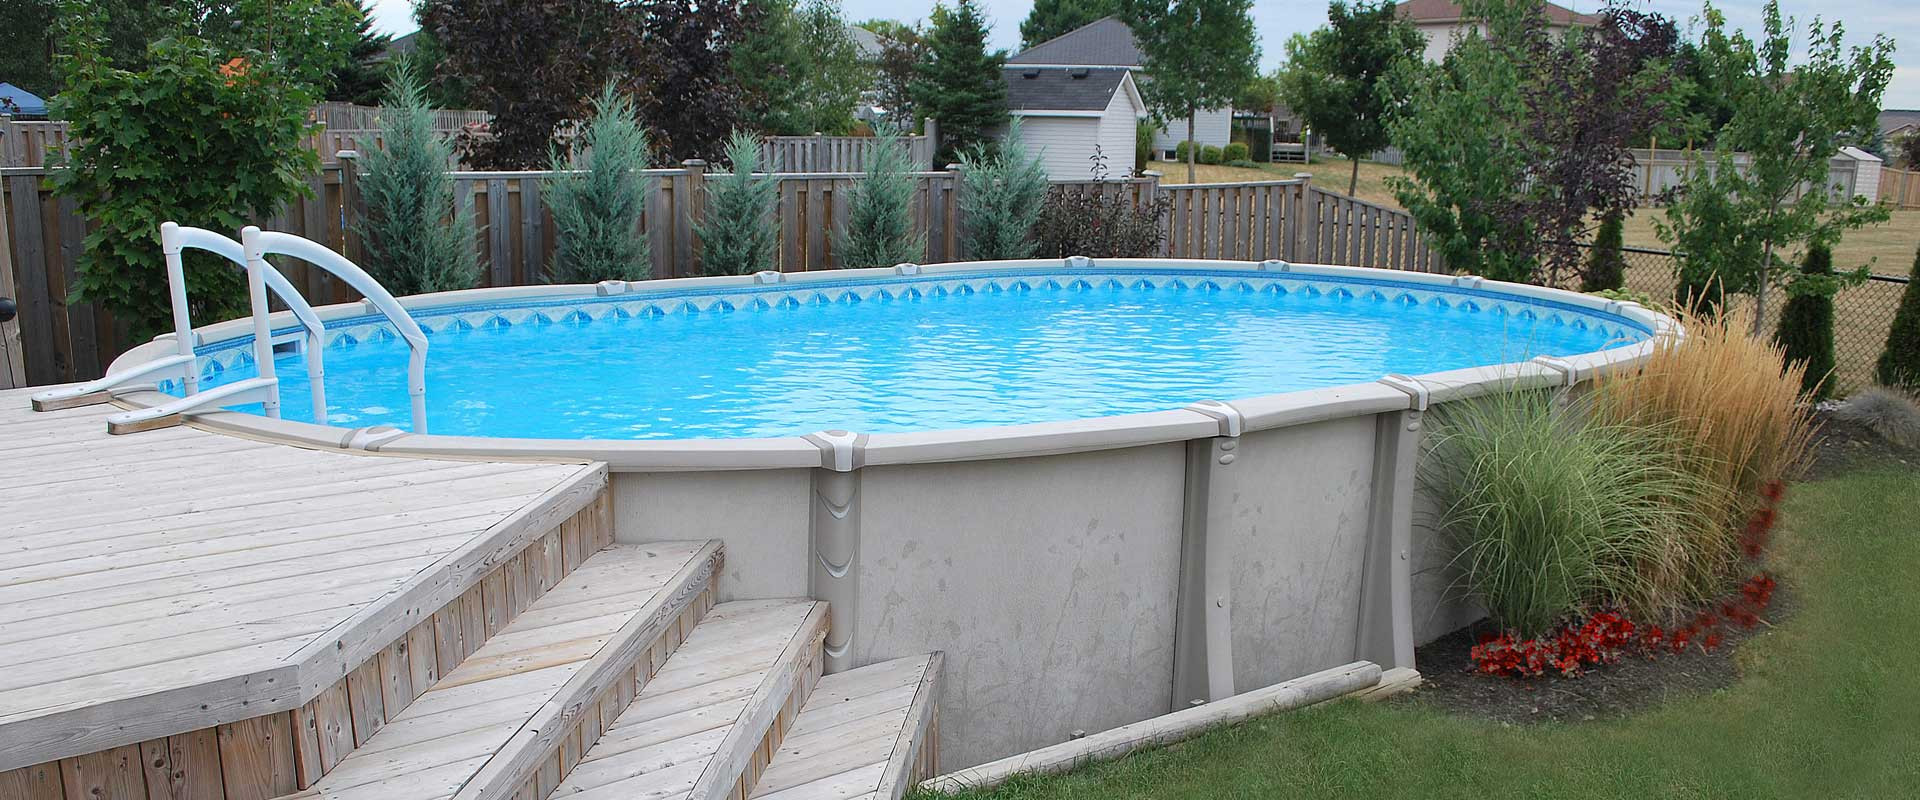 Best ideas about Opening Above Ground Pool . Save or Pin Ground Pools Resin & Steel Boldt Pools & Spas Now.